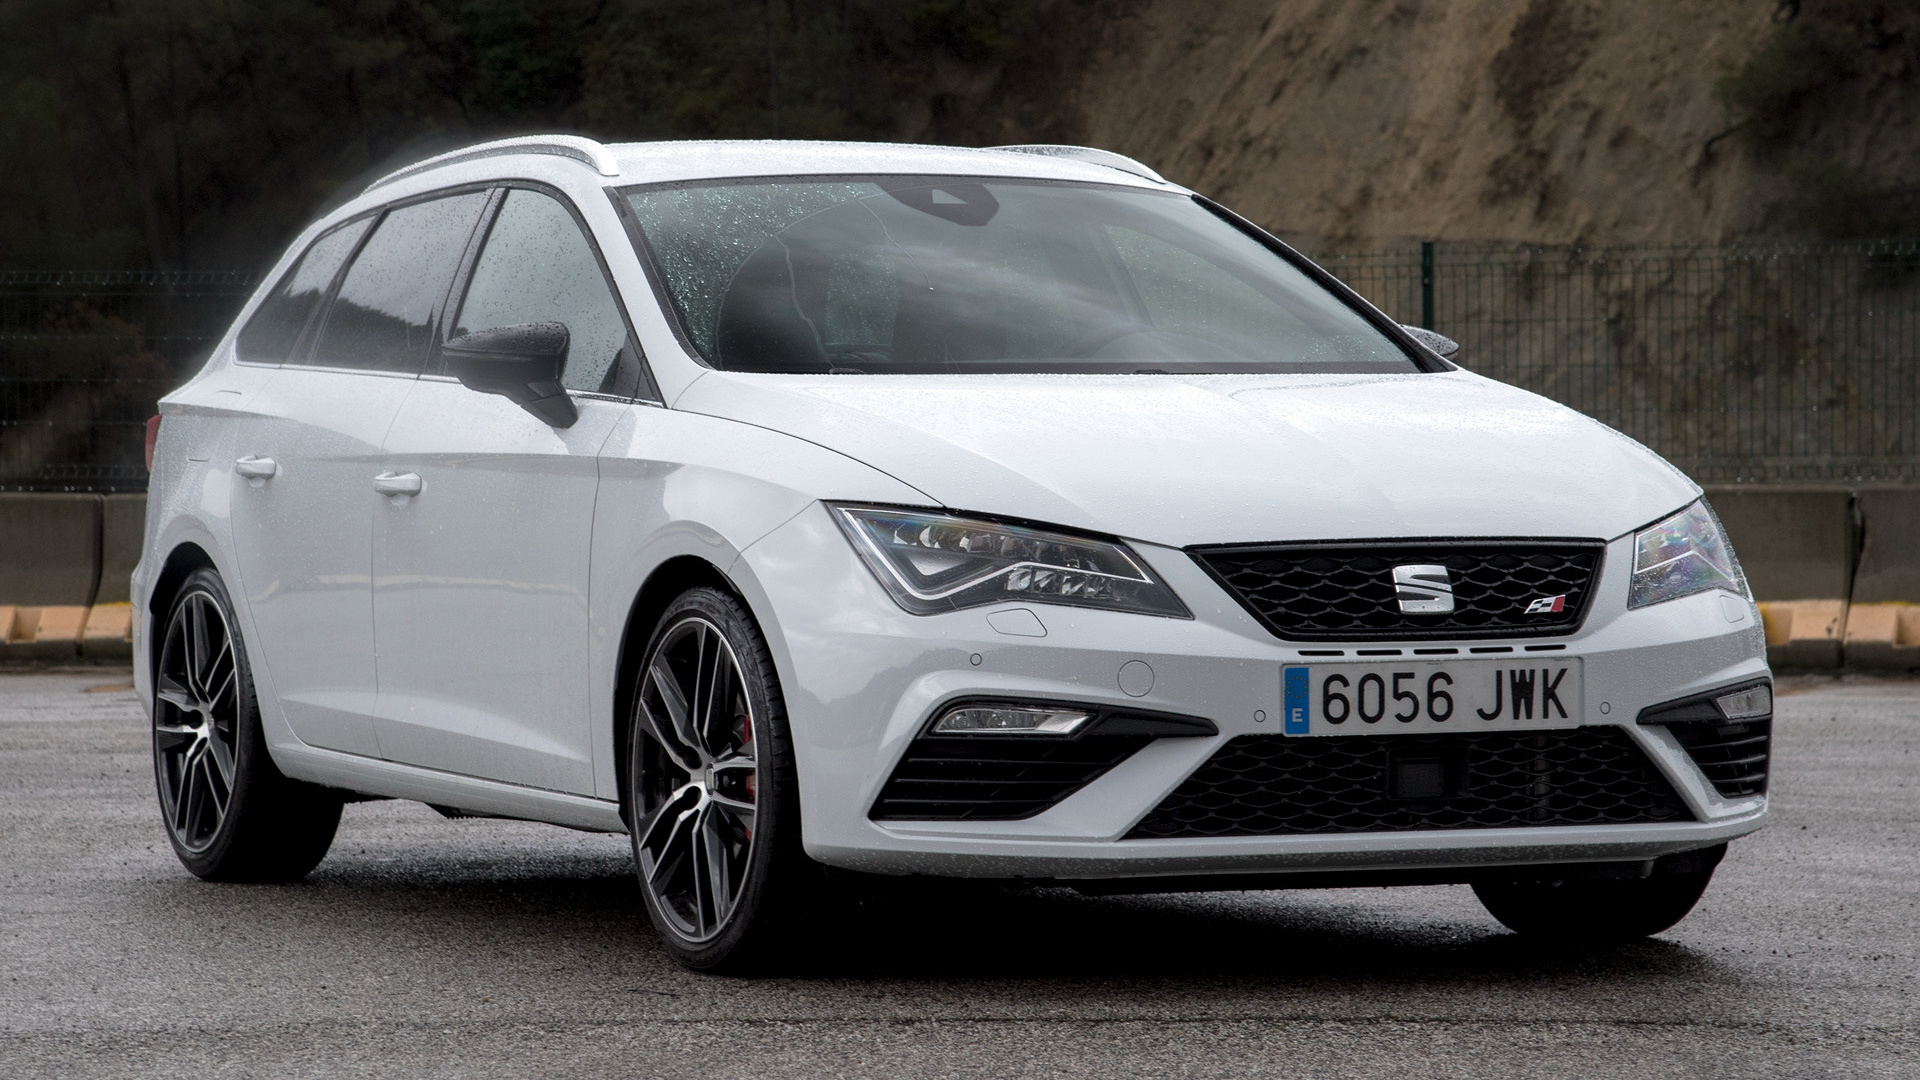 seat leon st cupra 300 2017 wallpapers and hd images. Black Bedroom Furniture Sets. Home Design Ideas